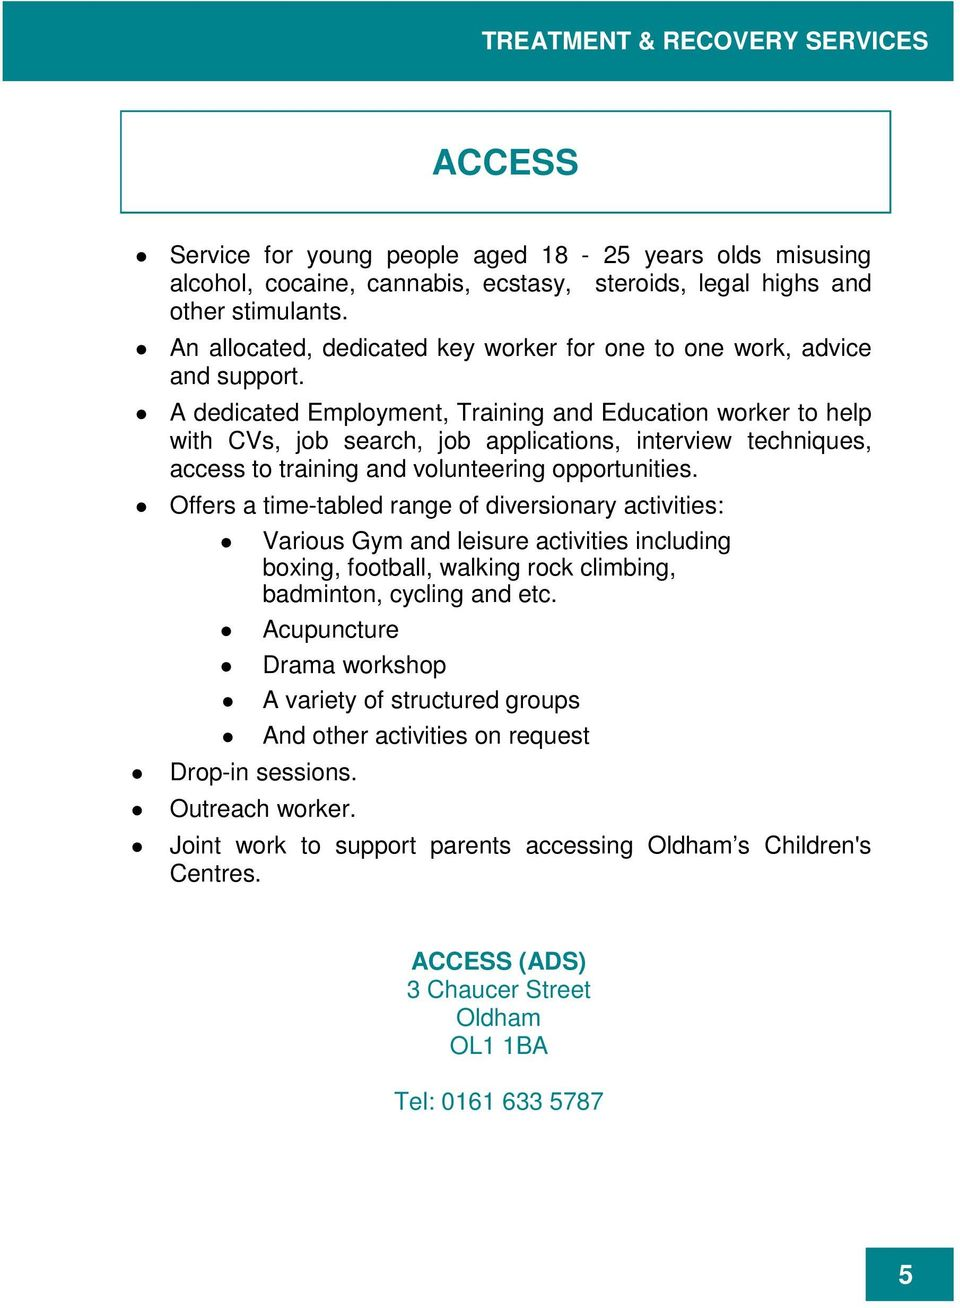 A dedicated Employment, Training and Education worker to help with CVs, job search, job applications, interview techniques, access to training and volunteering opportunities.